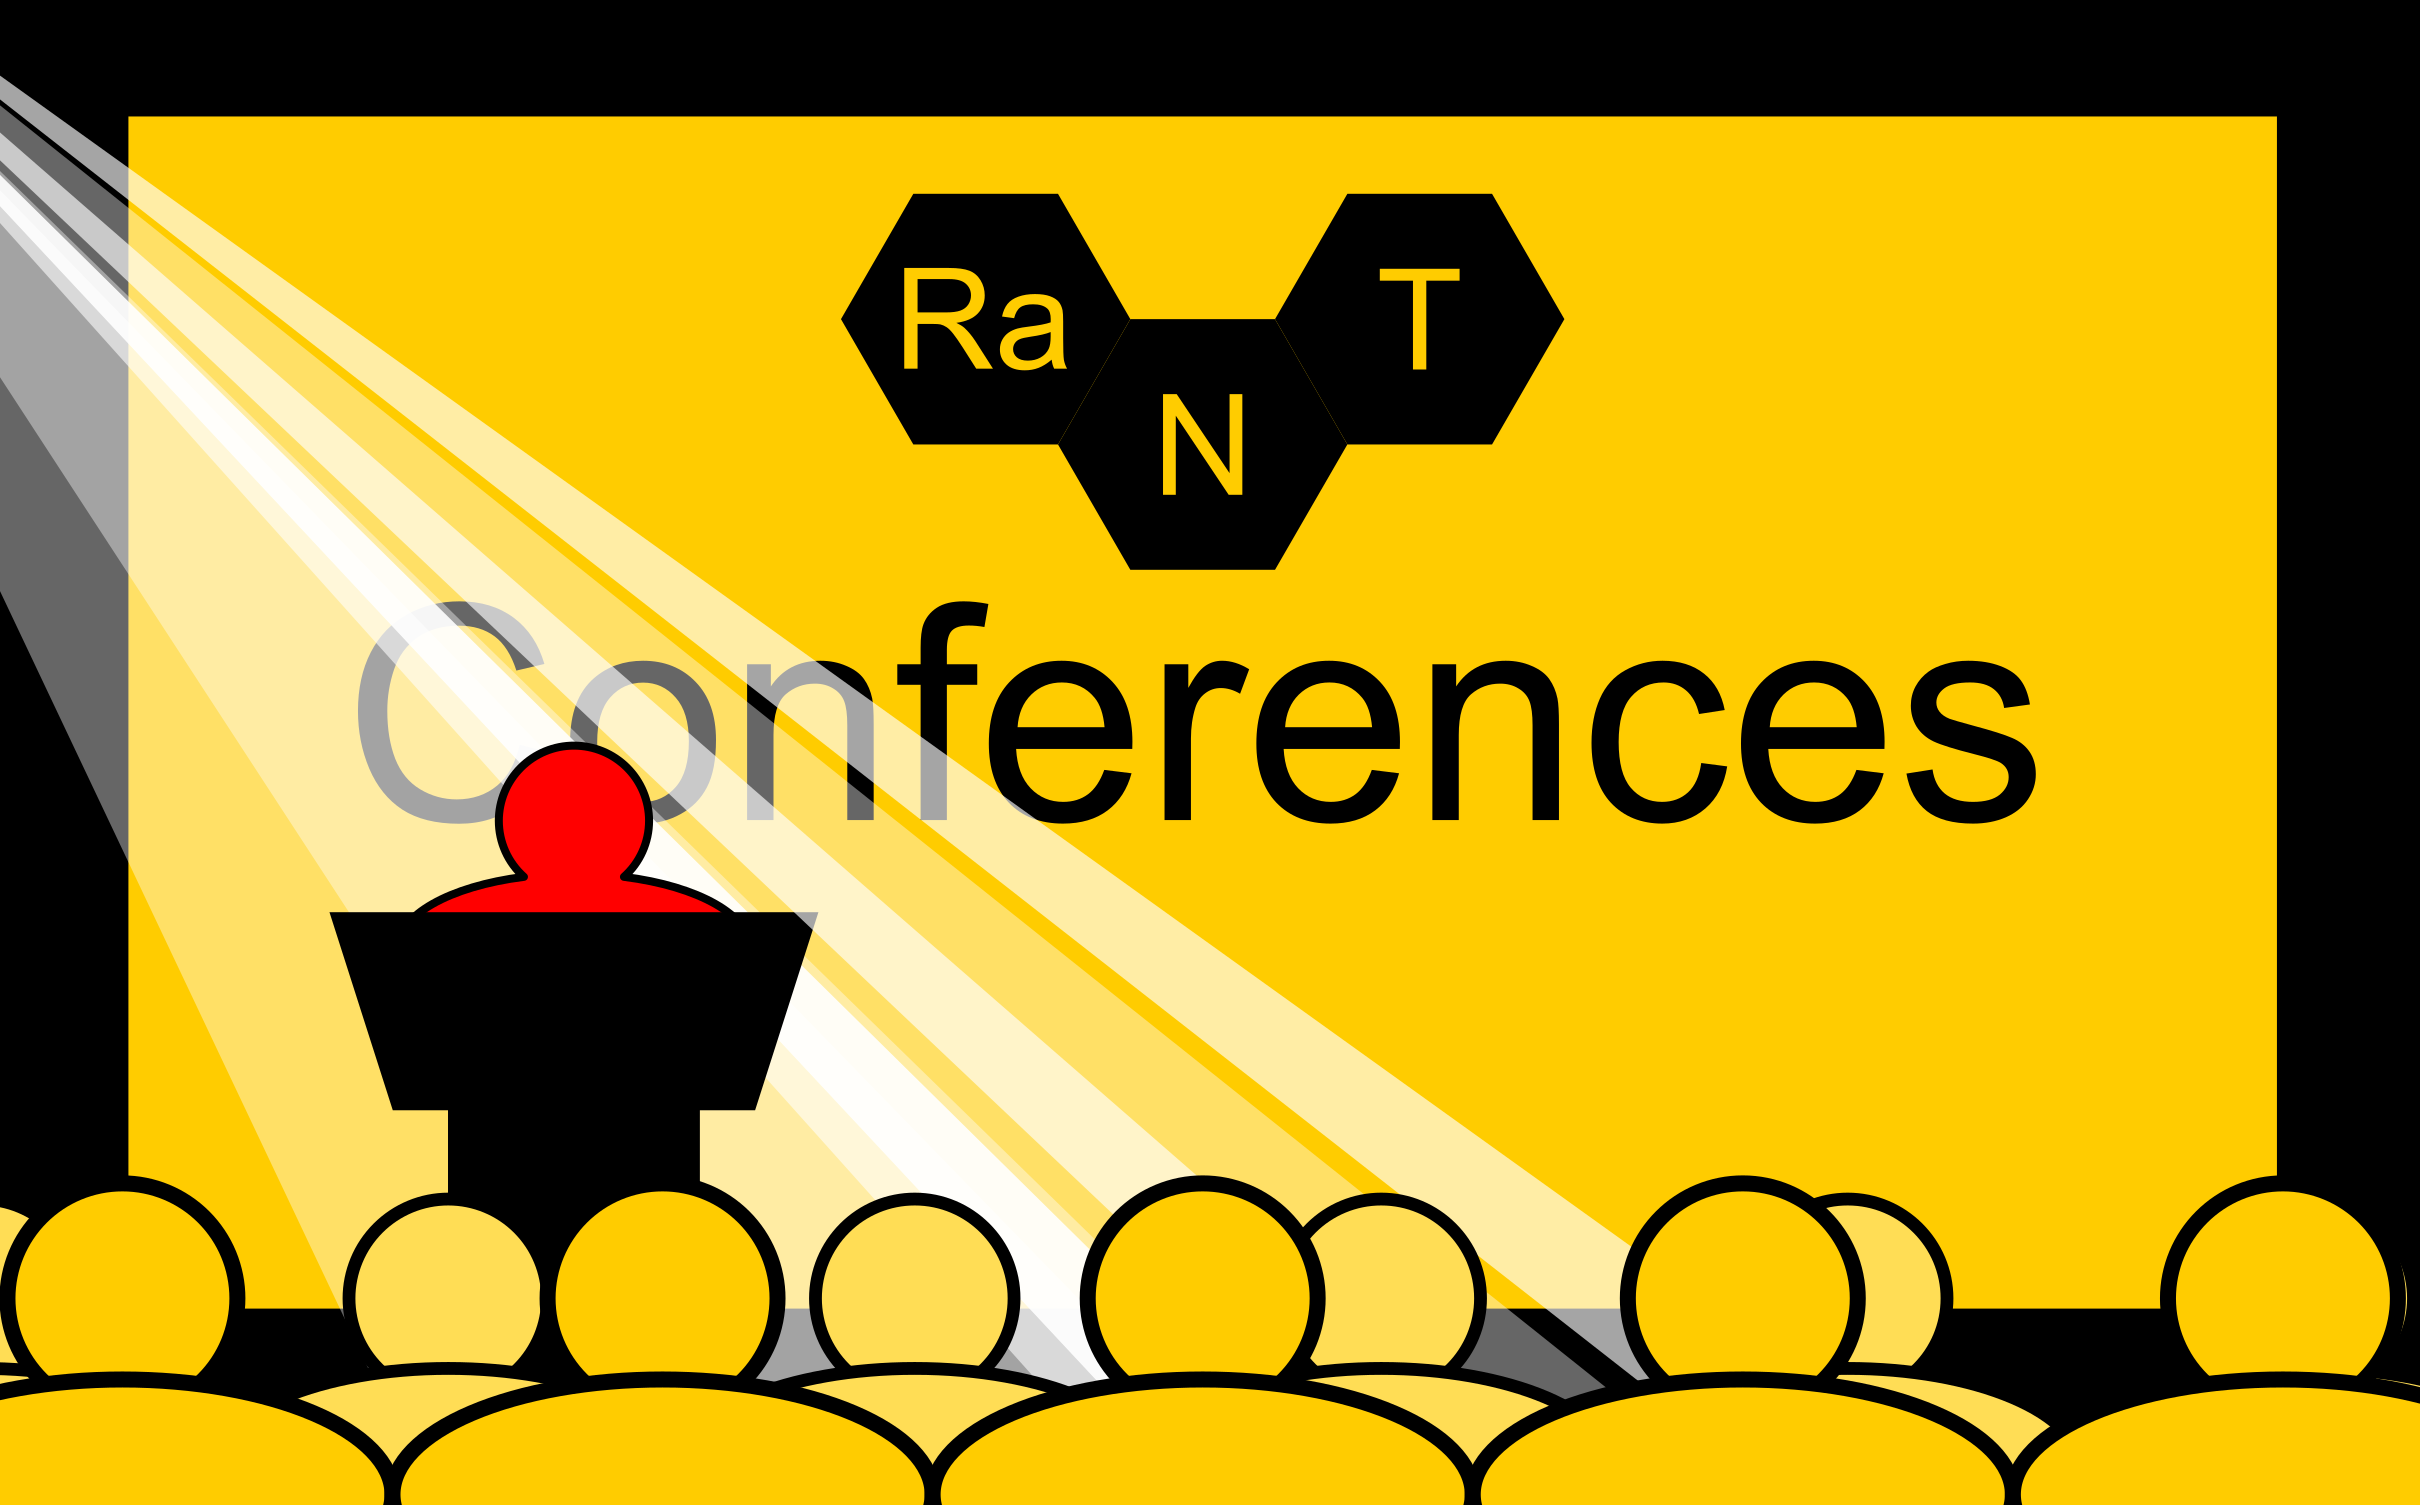 Conferences Graphic - This page/article is about the Raman Nanotheranostics (RaNT) team attending a scientific conference.